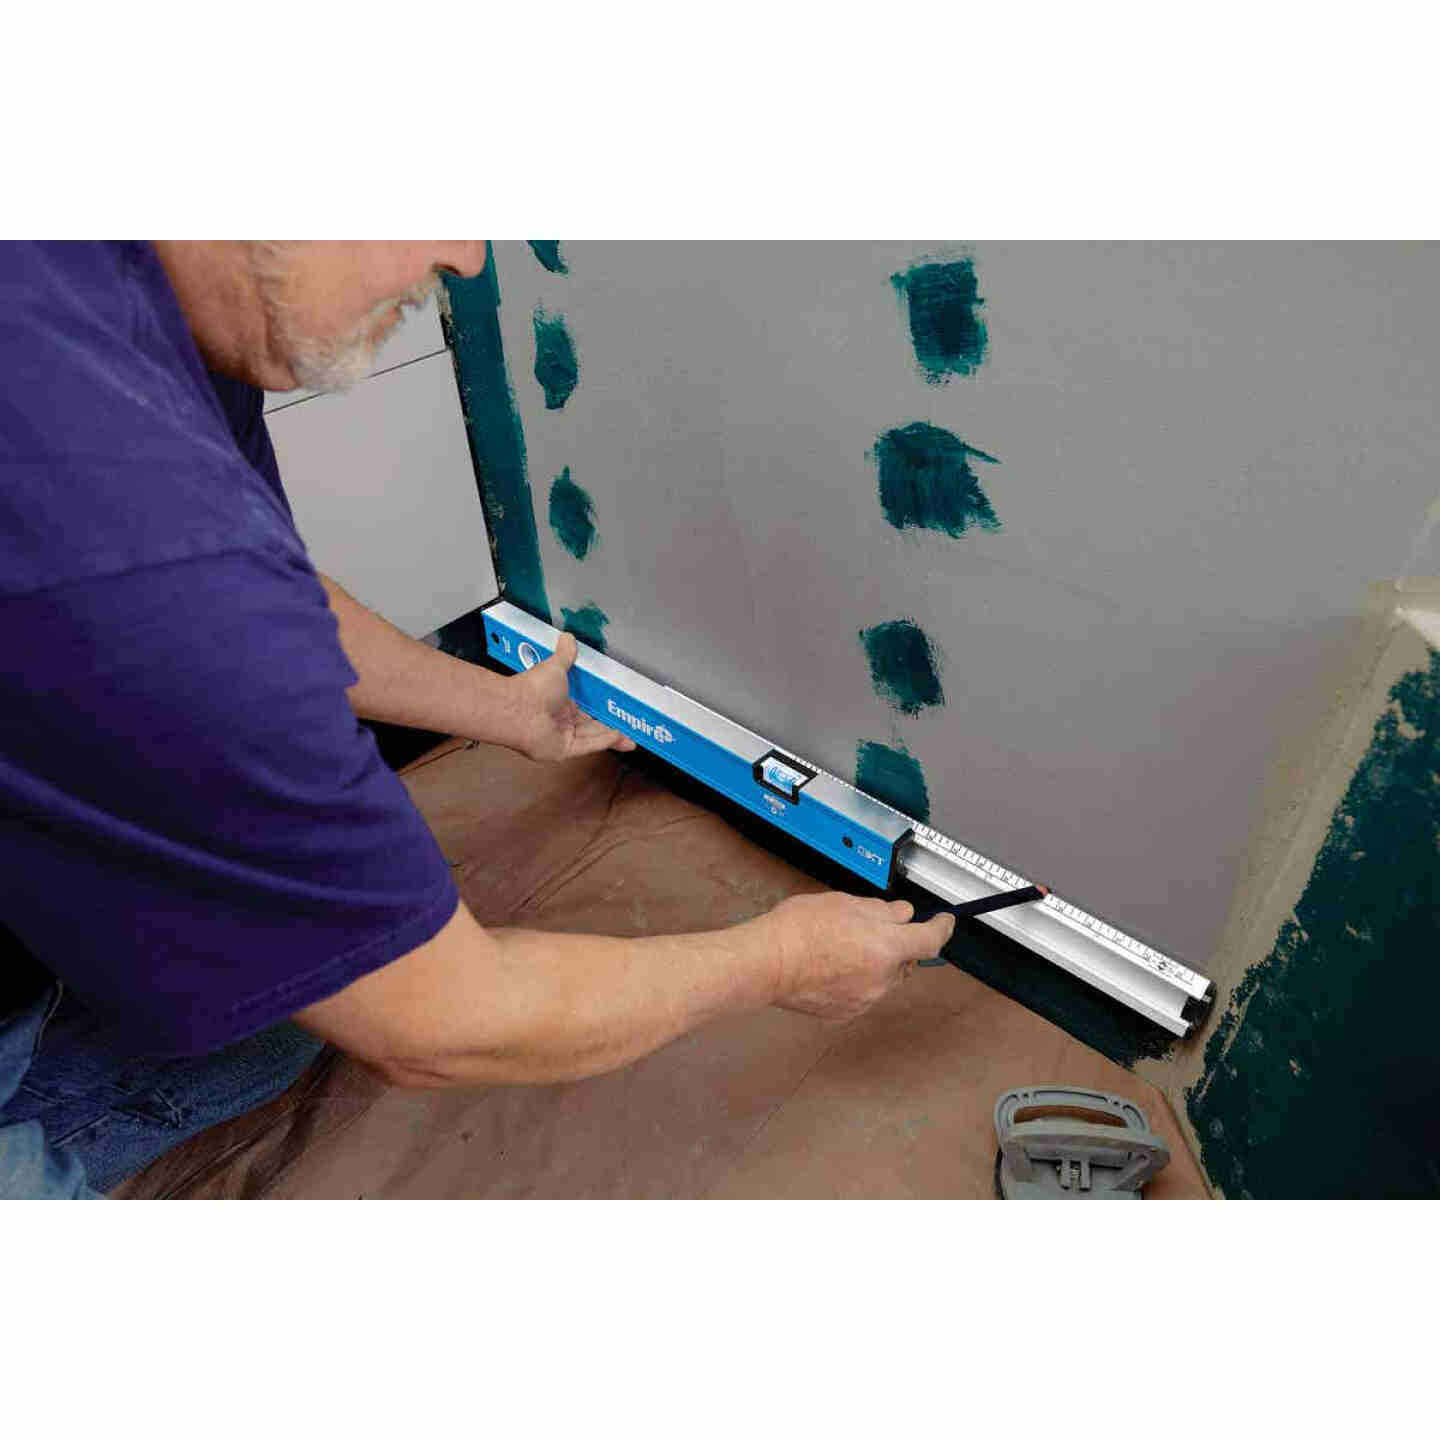 Empire True Blue 24 In. to 40 In. Aluminum Extendable Box Level Image 2